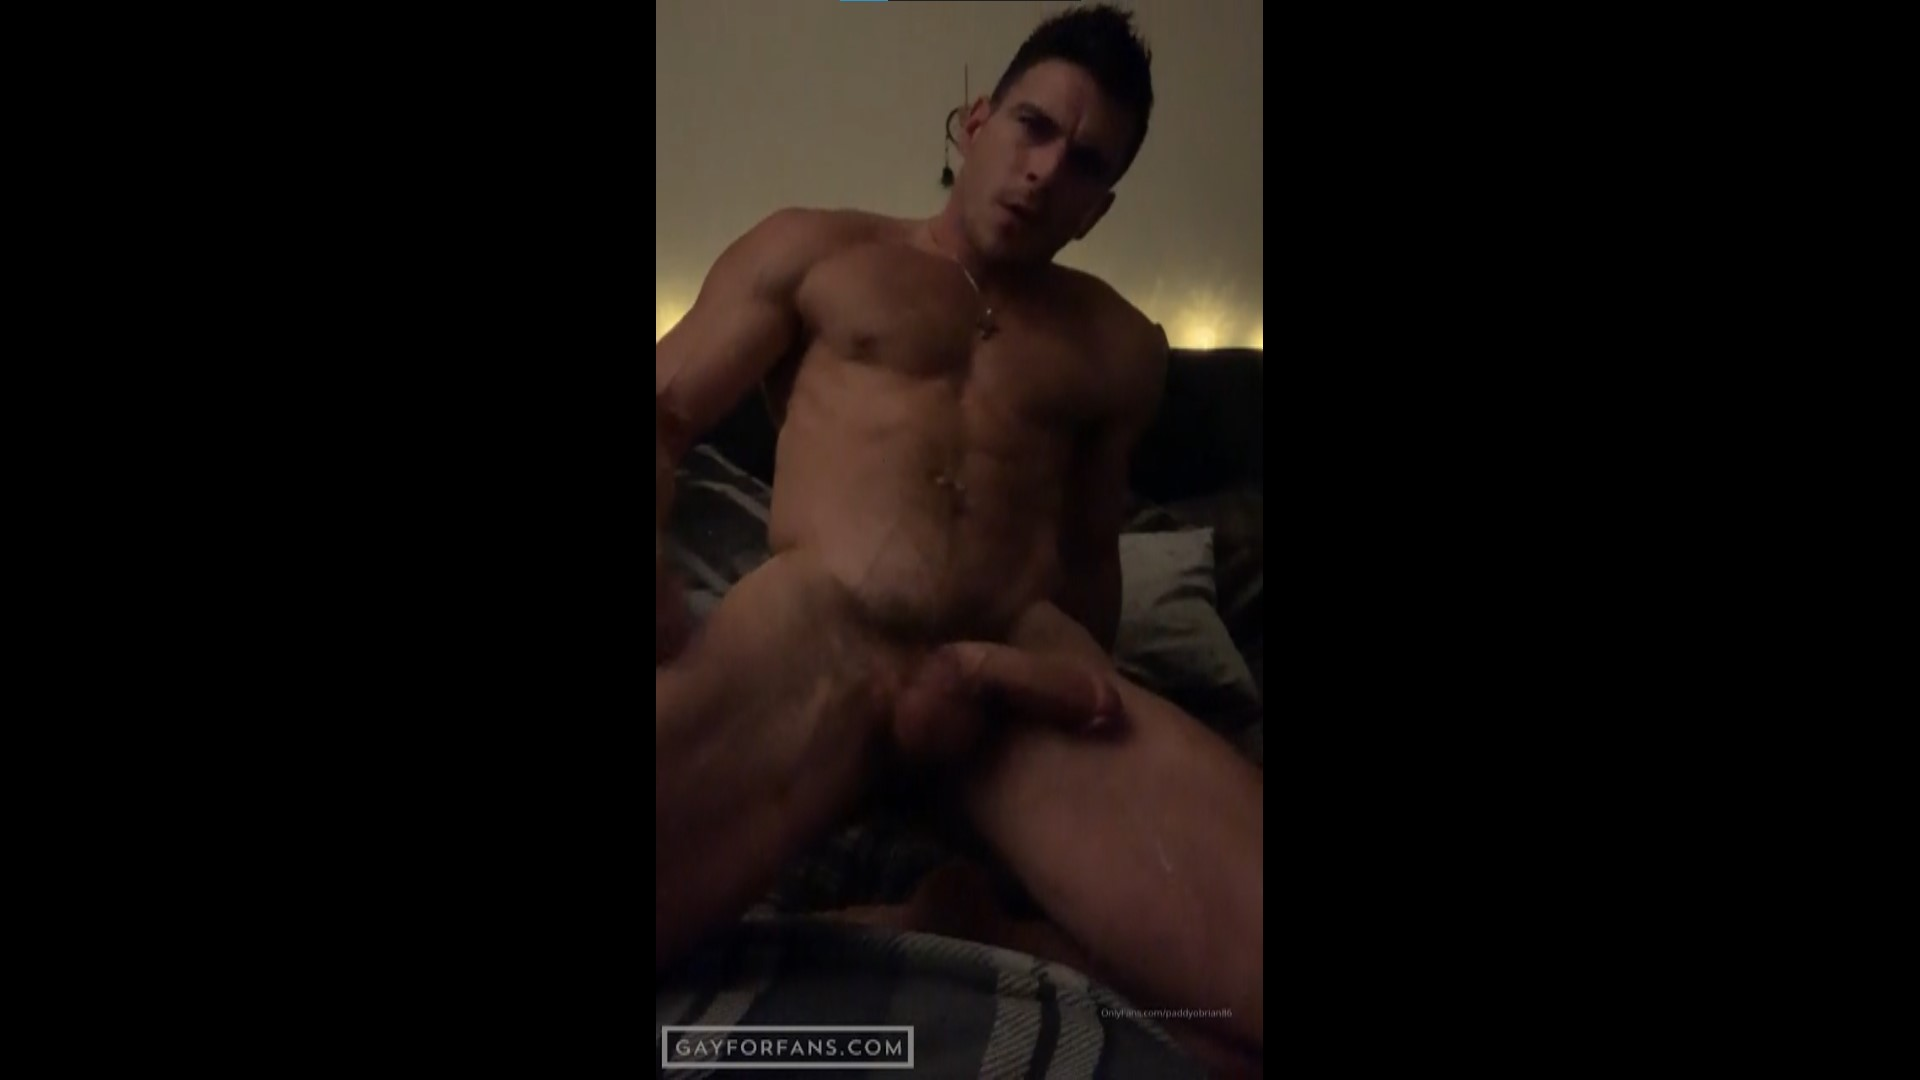 Playing with my ass and jerking off hard - Paddy O'Brian